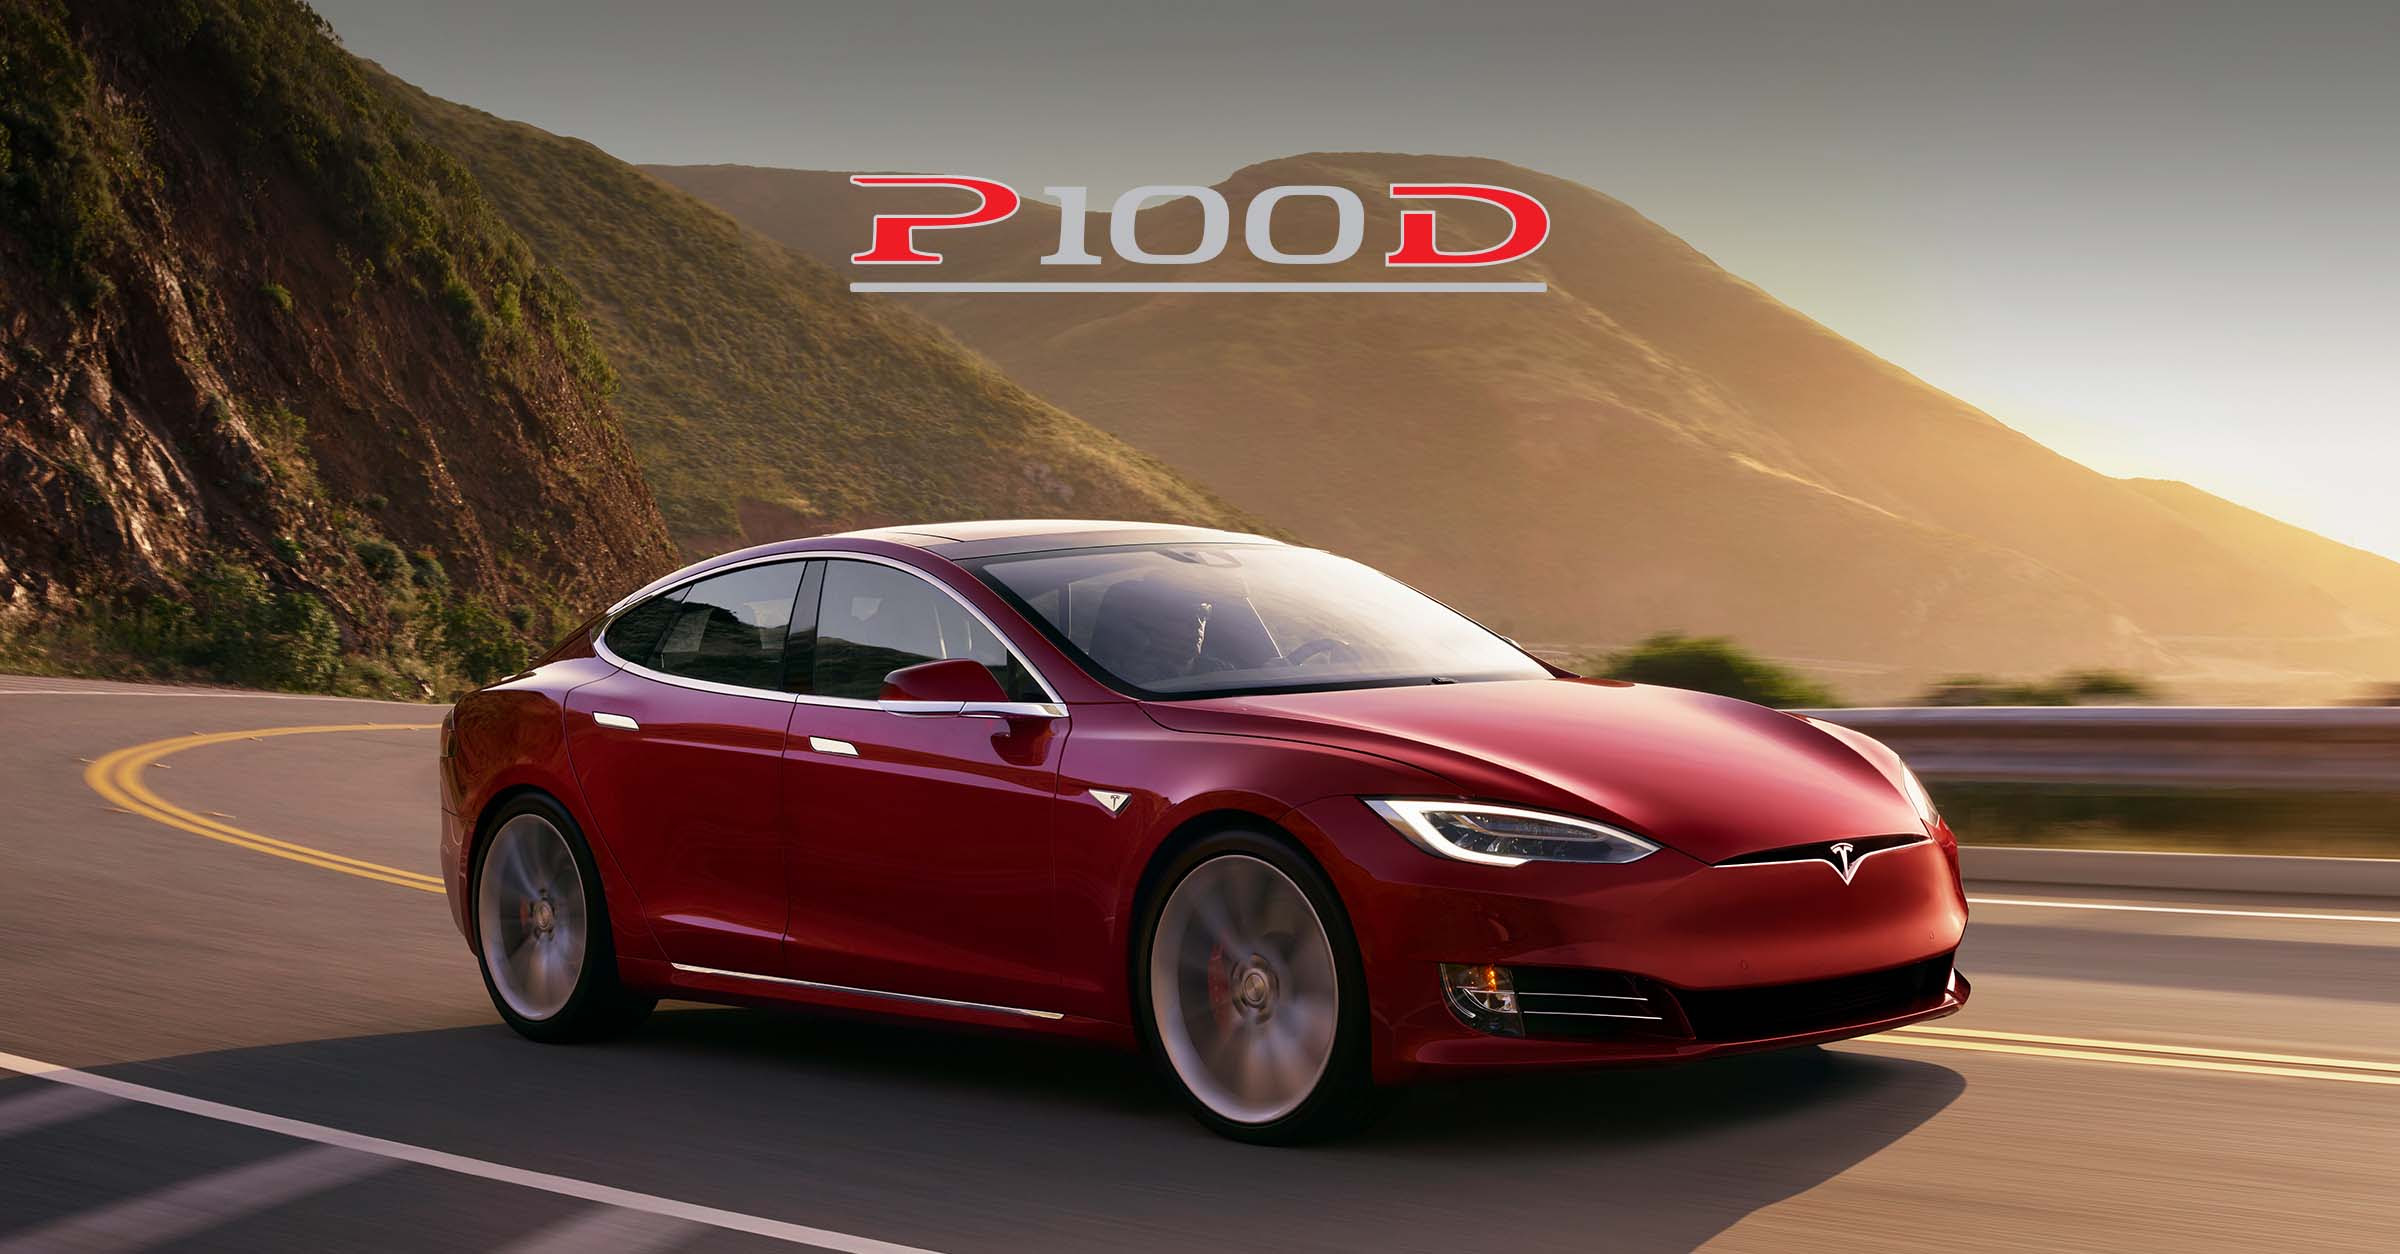 Image result for 2016 tesla model s p100DL